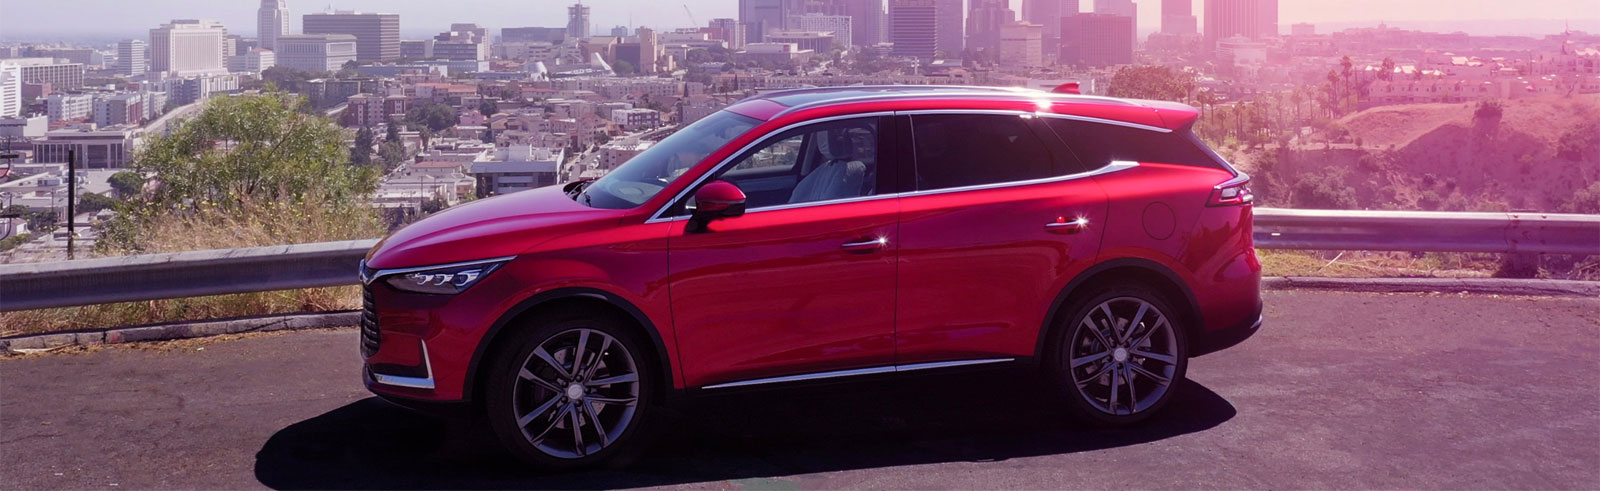 BYD Tang EV will visit the Concours d'Elegance in Pebble Beach, CA